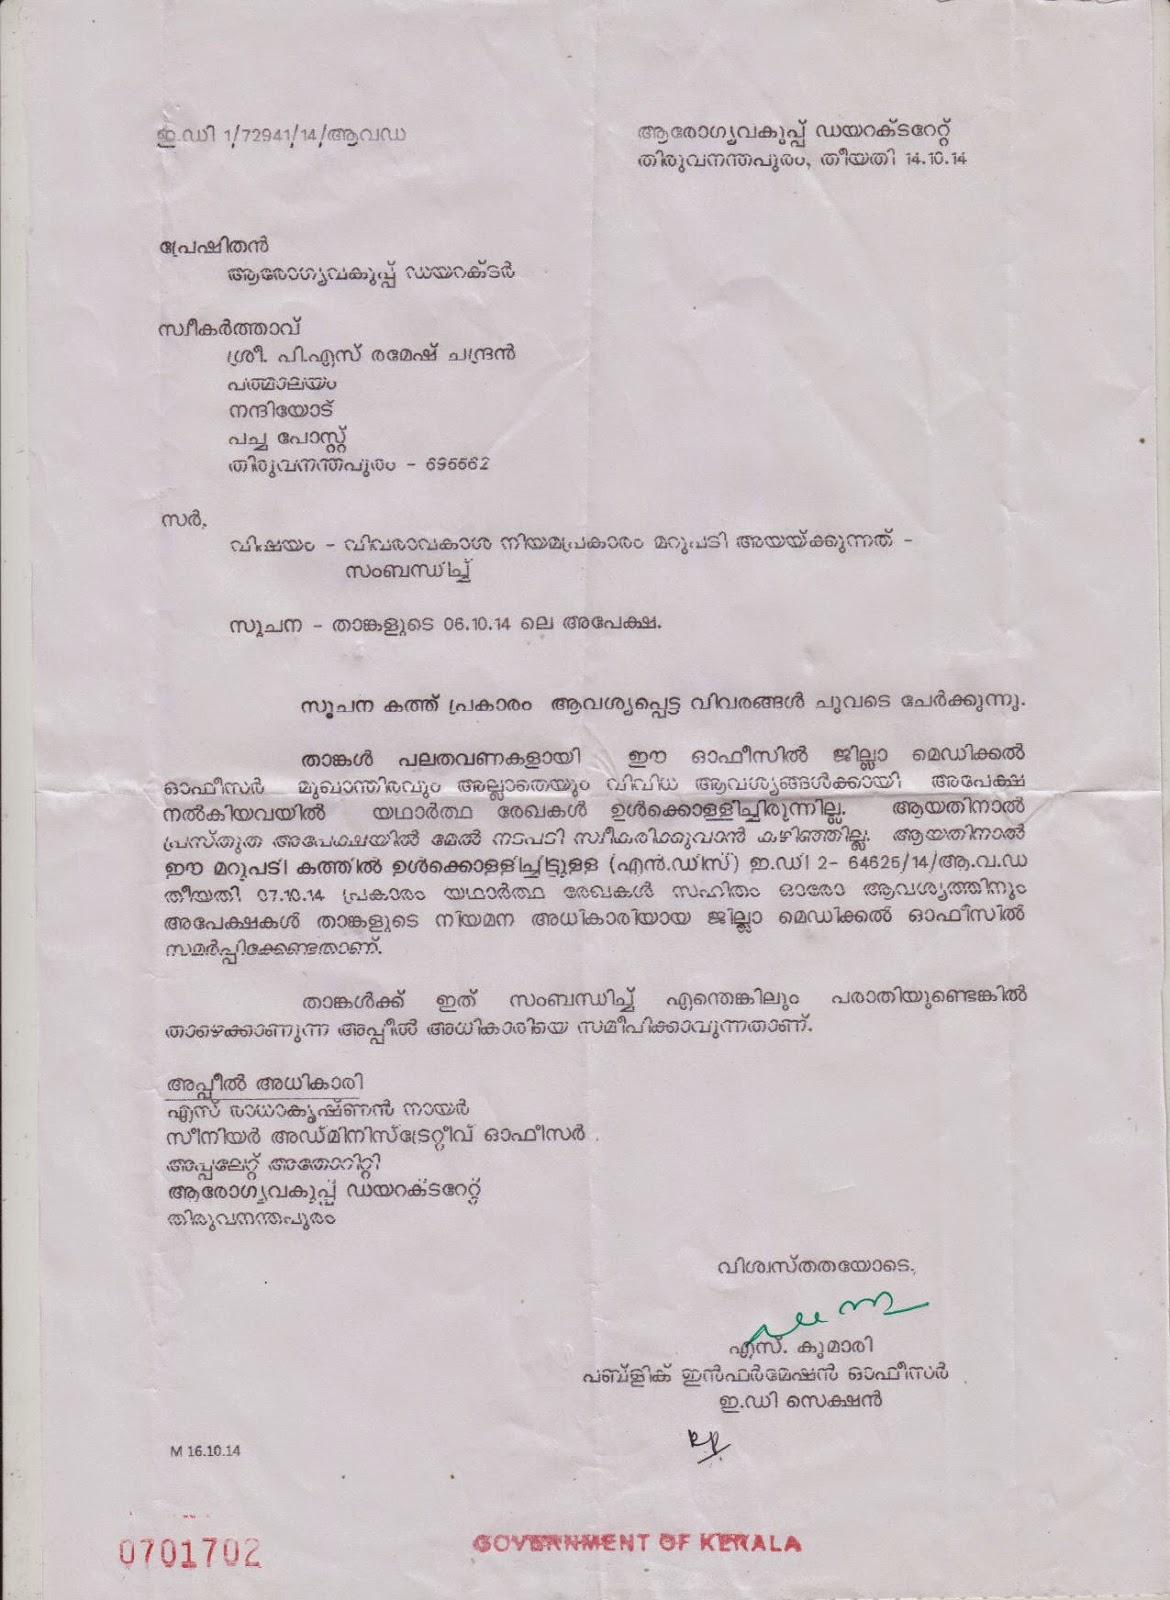 Sahyadri books online trivandrum november 2014 rti reply from dhs 14102014 thecheapjerseys Image collections